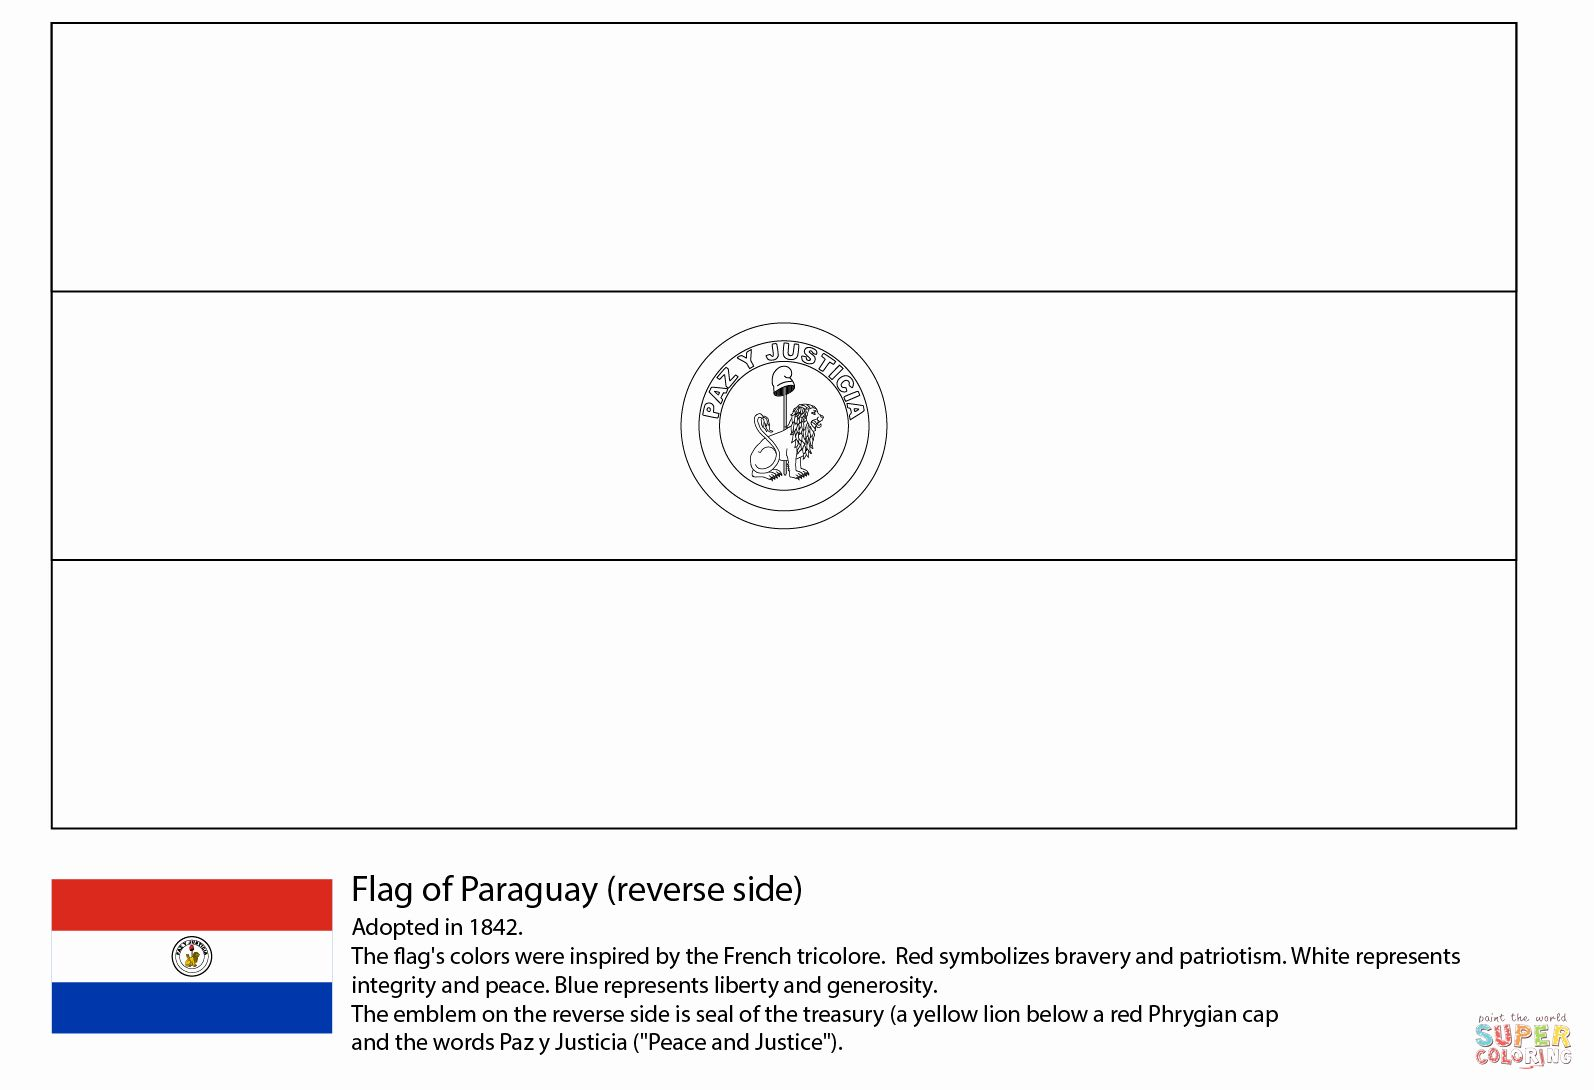 Uruguay Flag Coloring Page Luxury Paraguay Flag Reverse Side Coloring Page Uruguay Flag Flag Coloring Pages Coloring Pages